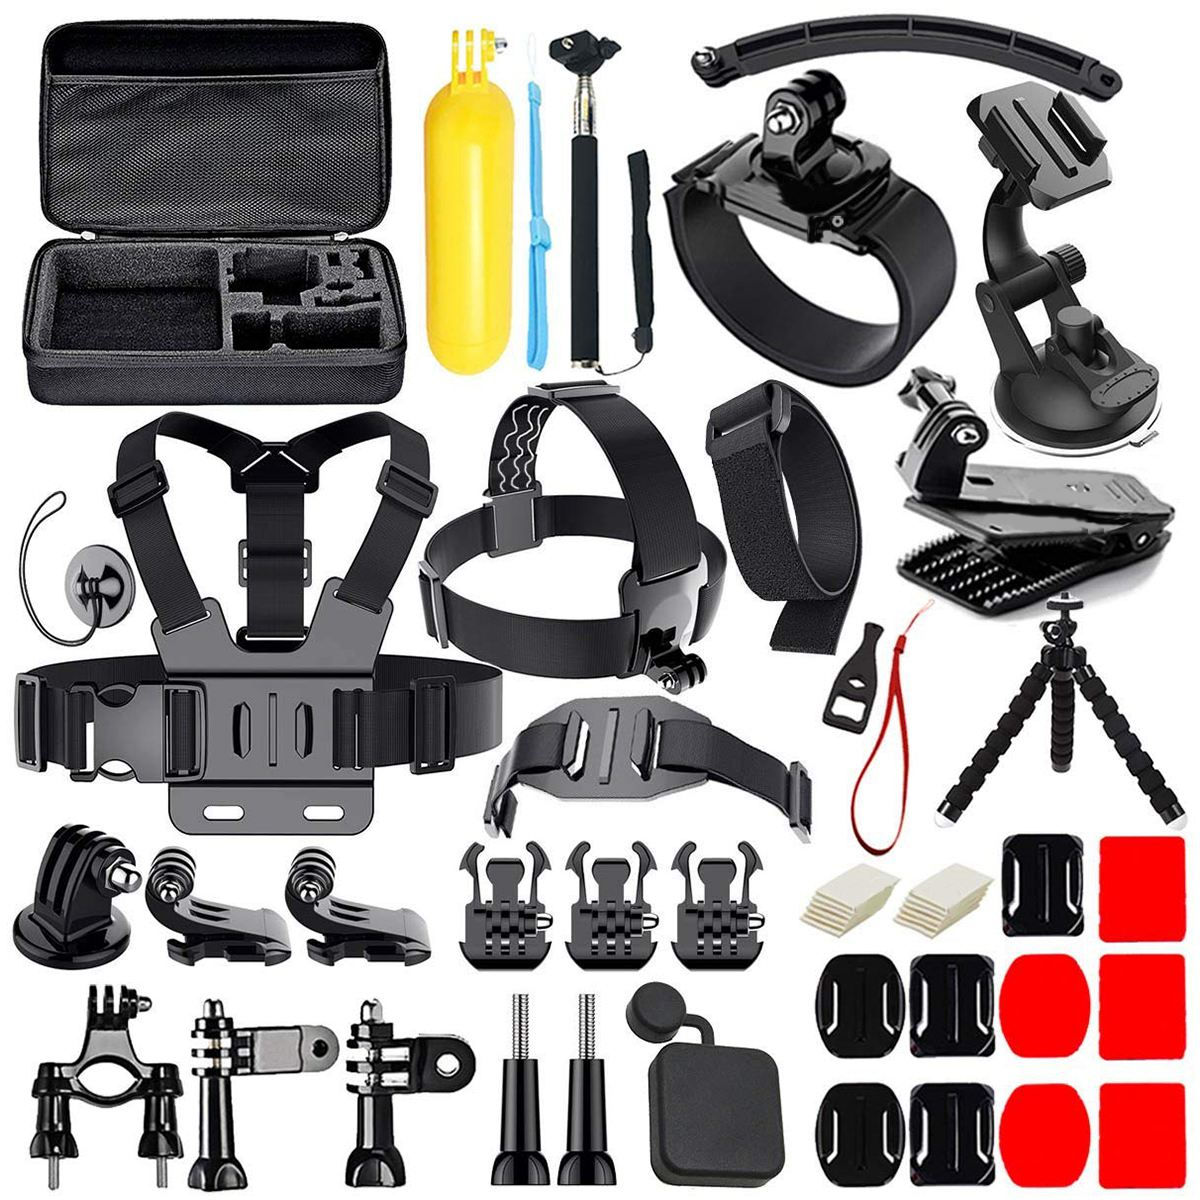 50 in 1 Action Camera Accessories Kit for GoPro Hero 2018 GoPro Hero6 5 4 3 Carrying Case/Chest Strap/Octopus Tripod|Sports Camcorder Cases| |  - title=